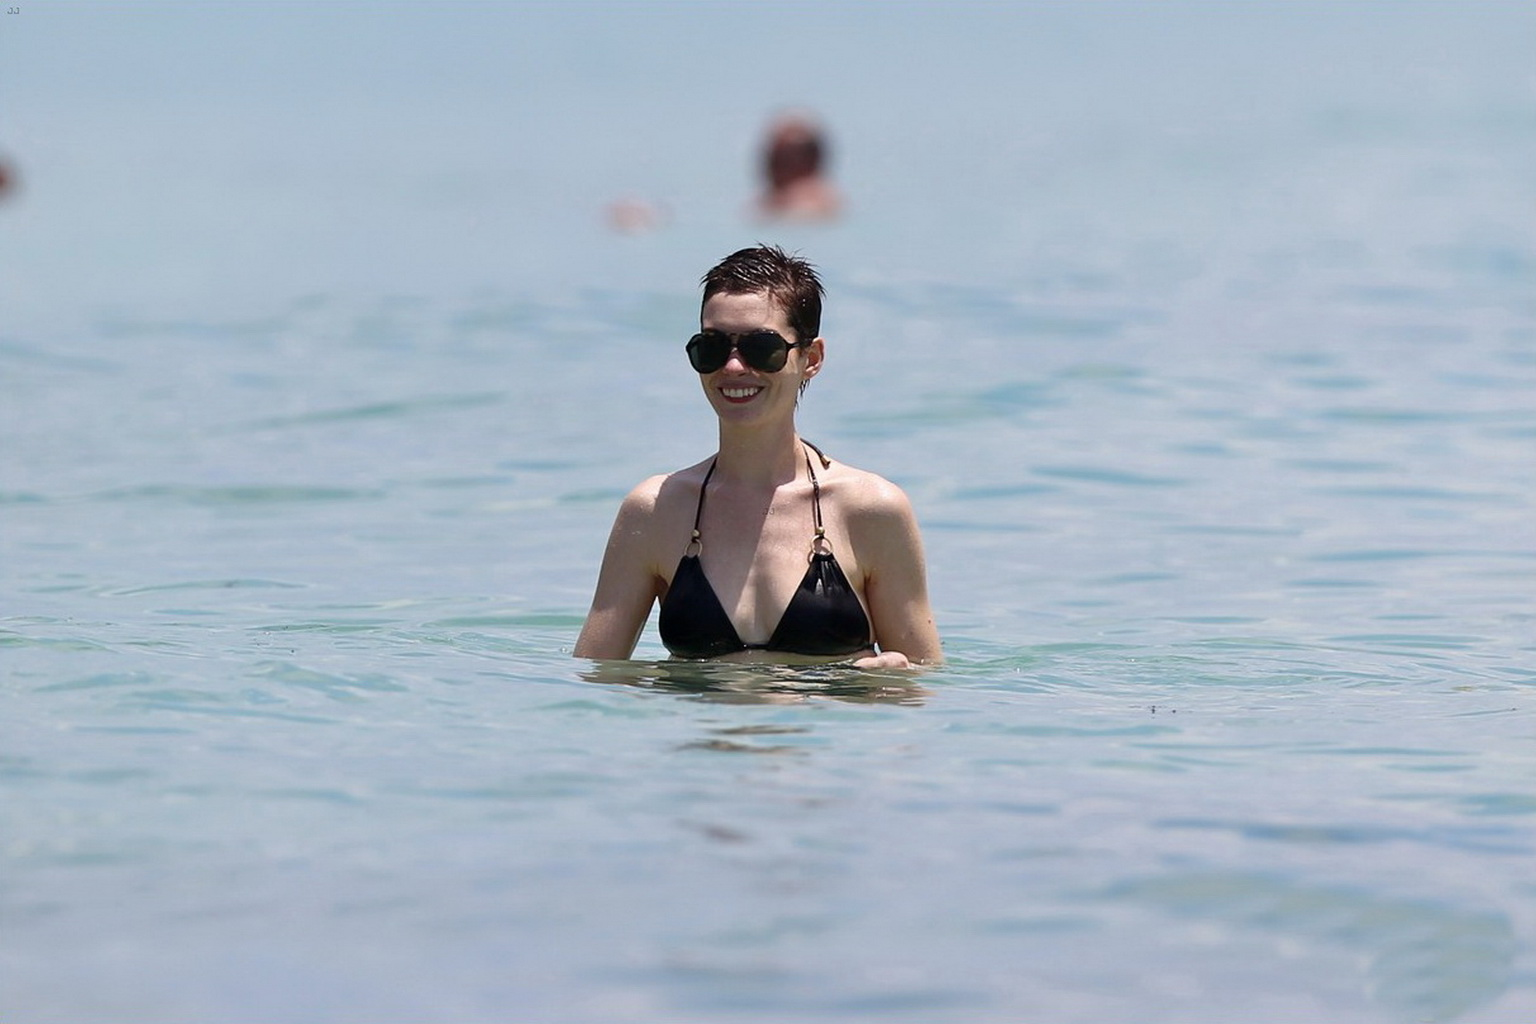 Anne hathaway casino totale